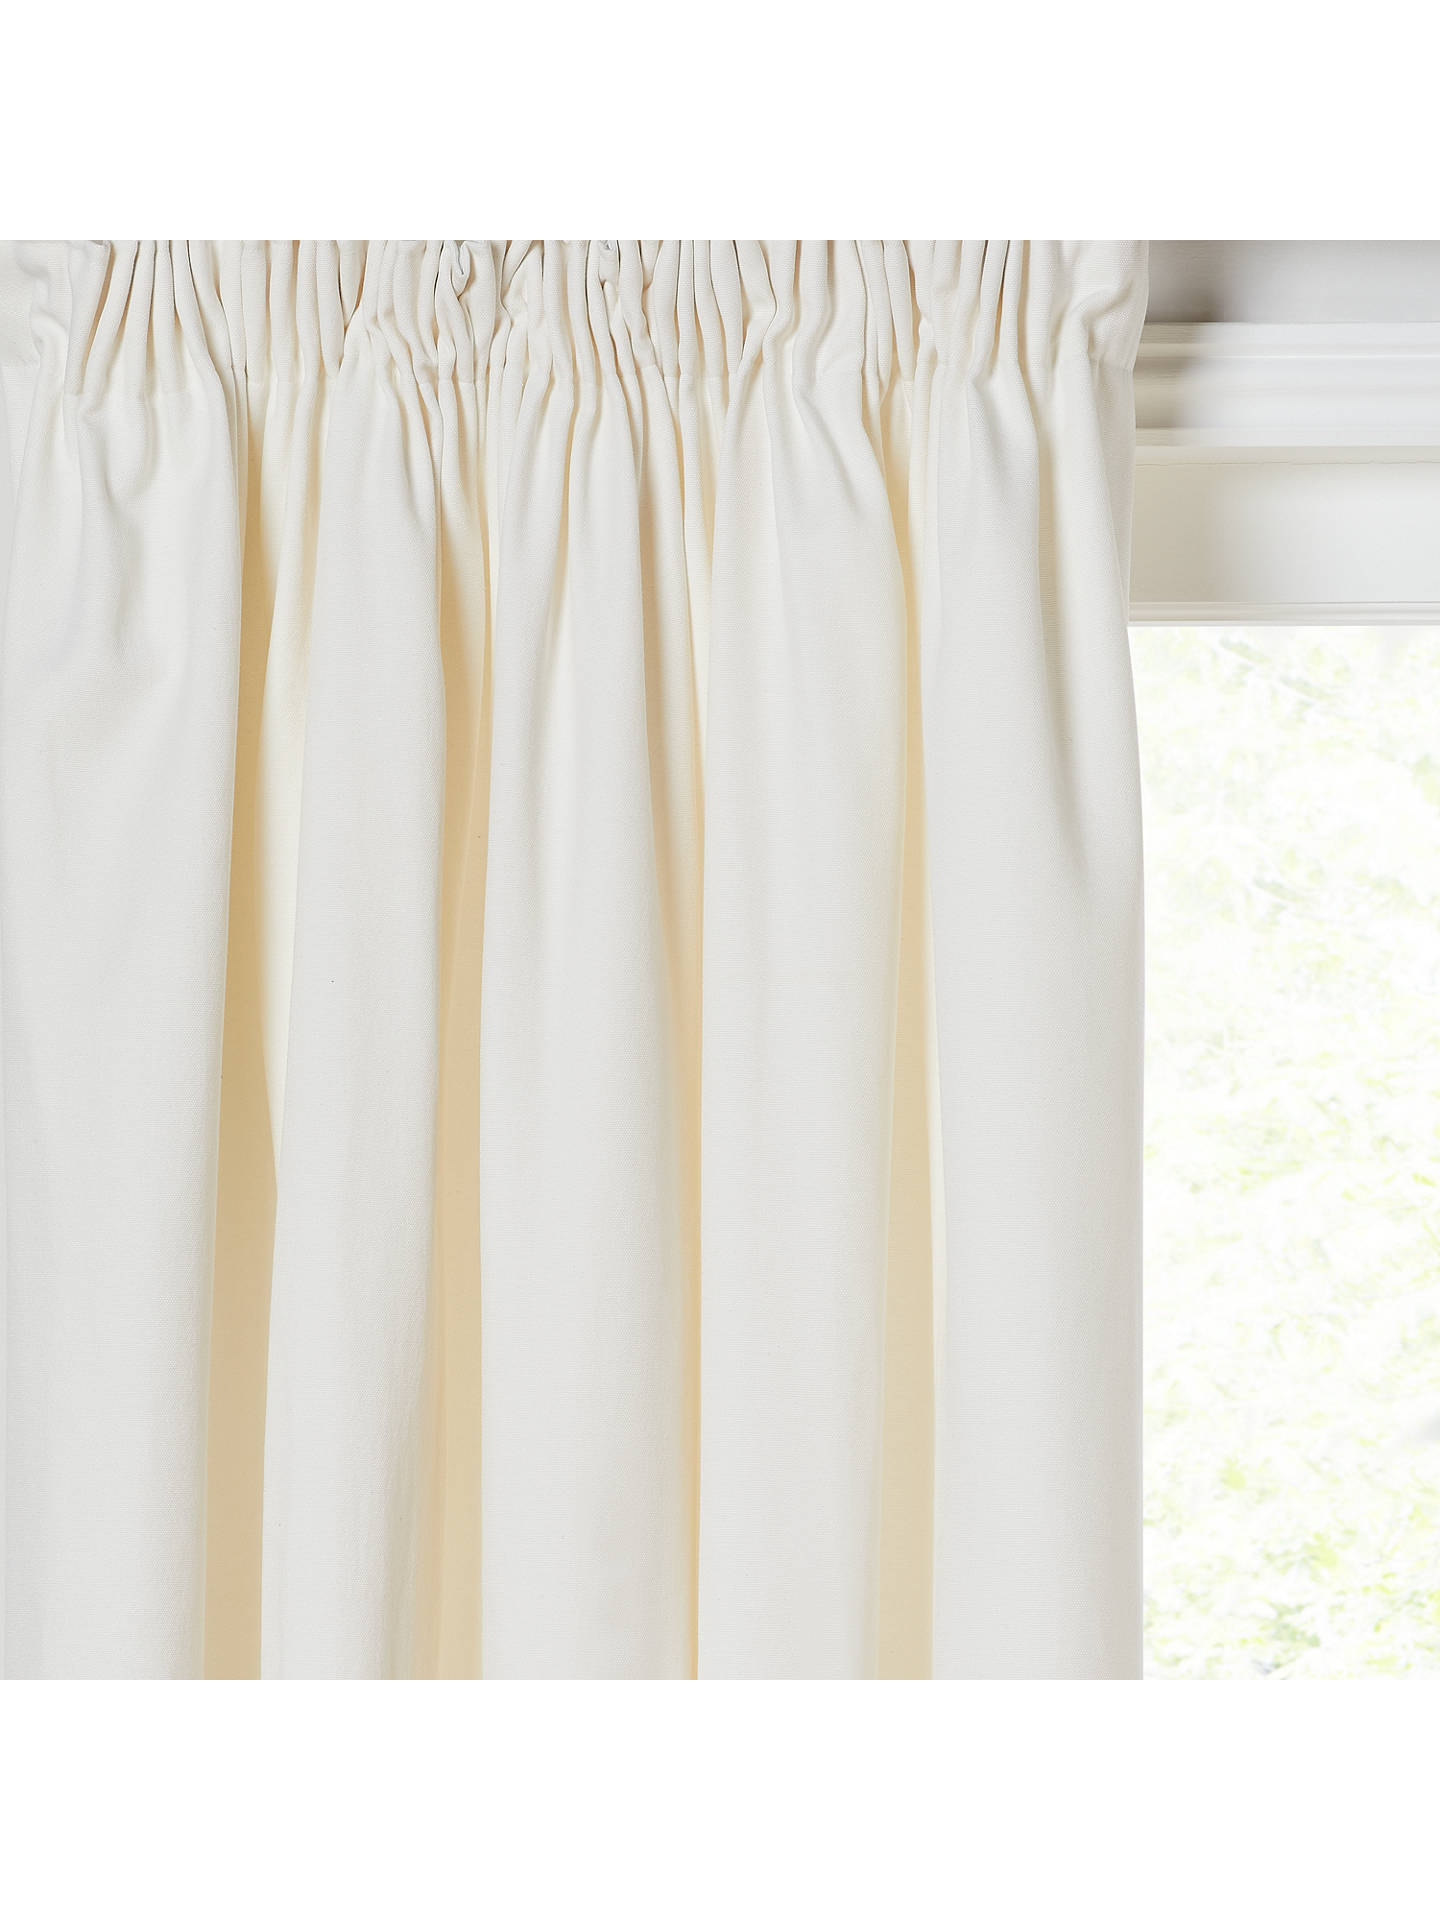 Buy House by John Lewis Arlo Pair Lined Pencil Pleat Curtains, Lily, W117 x Drop 137cm Online at johnlewis.com